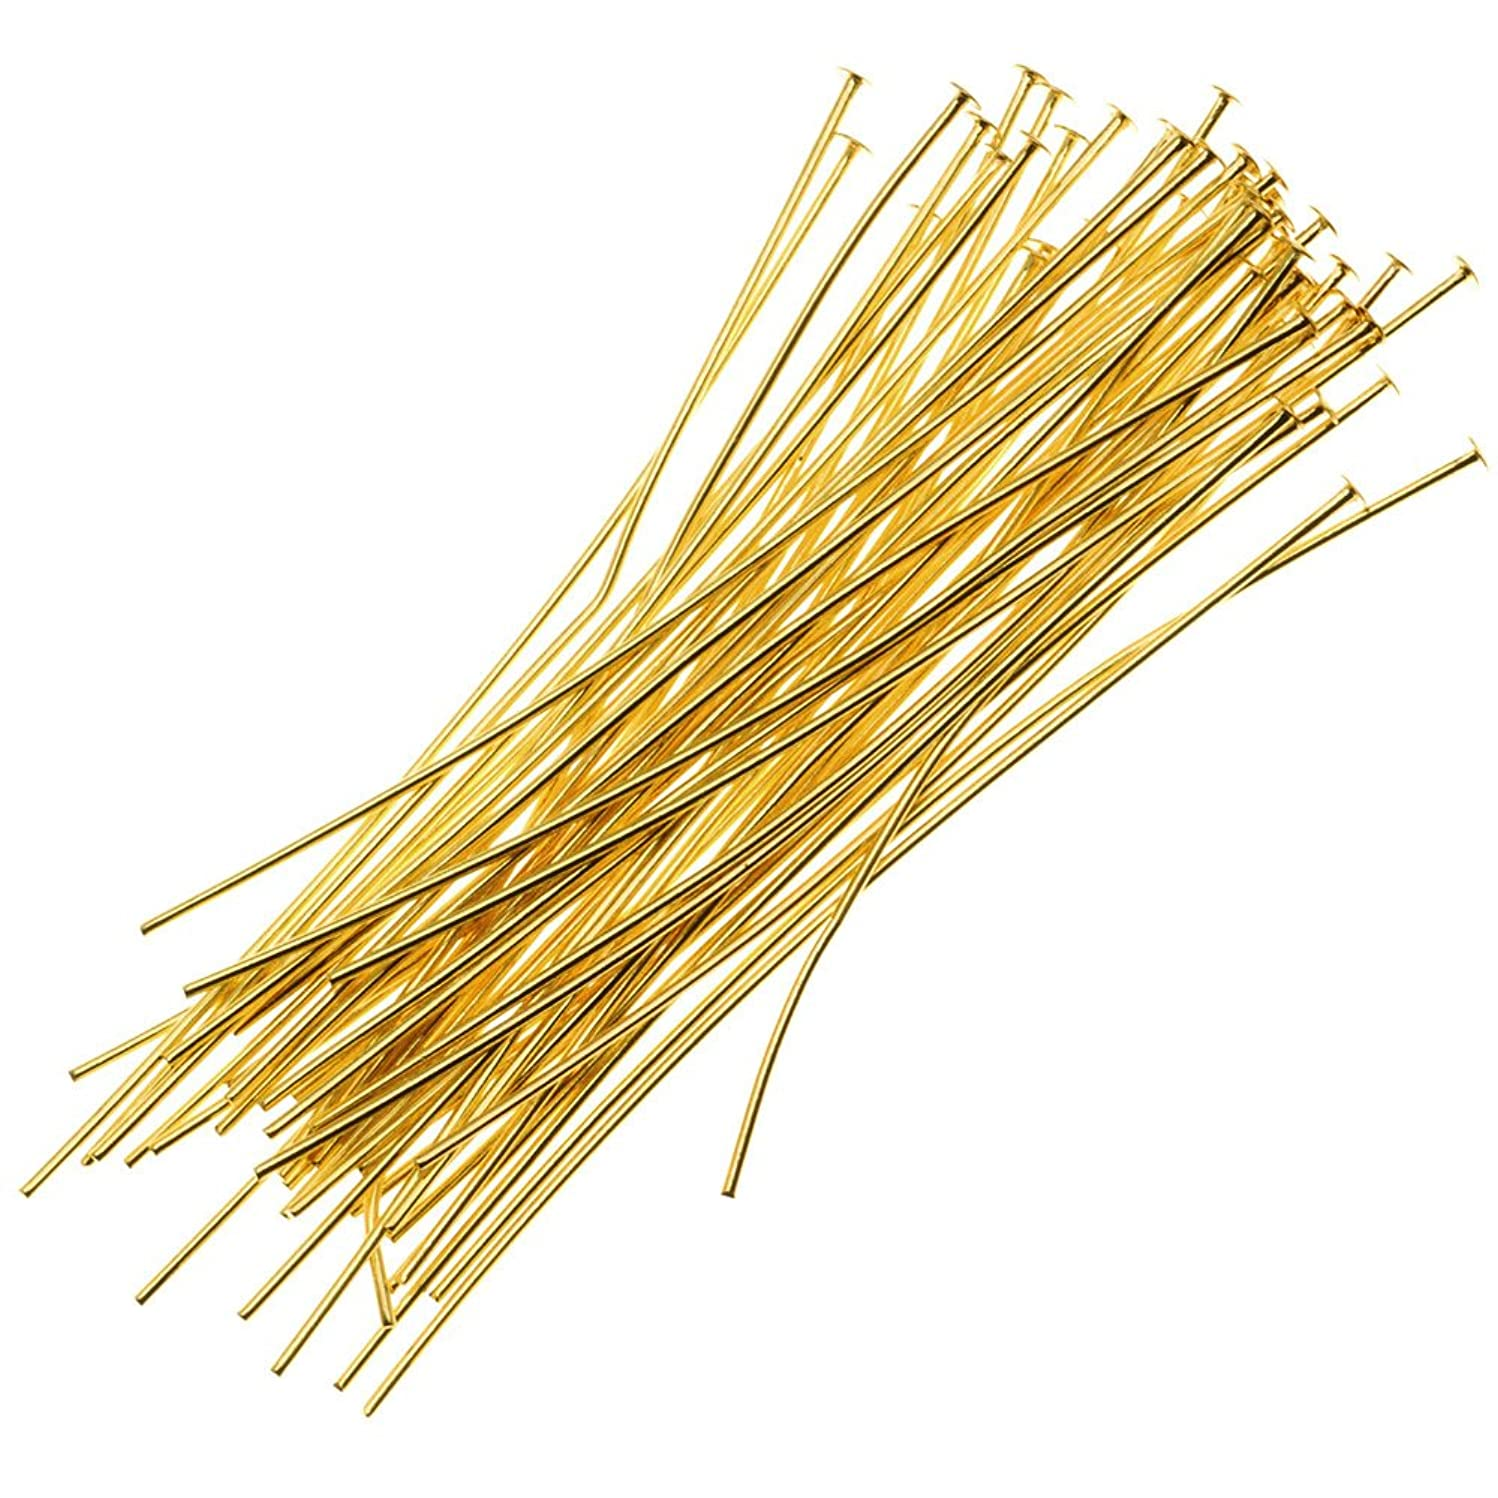 Beadaholique 725A-3.00 25-Piece Brass Tone Head Pins, 22-Gauge, 3-Inch, Gold